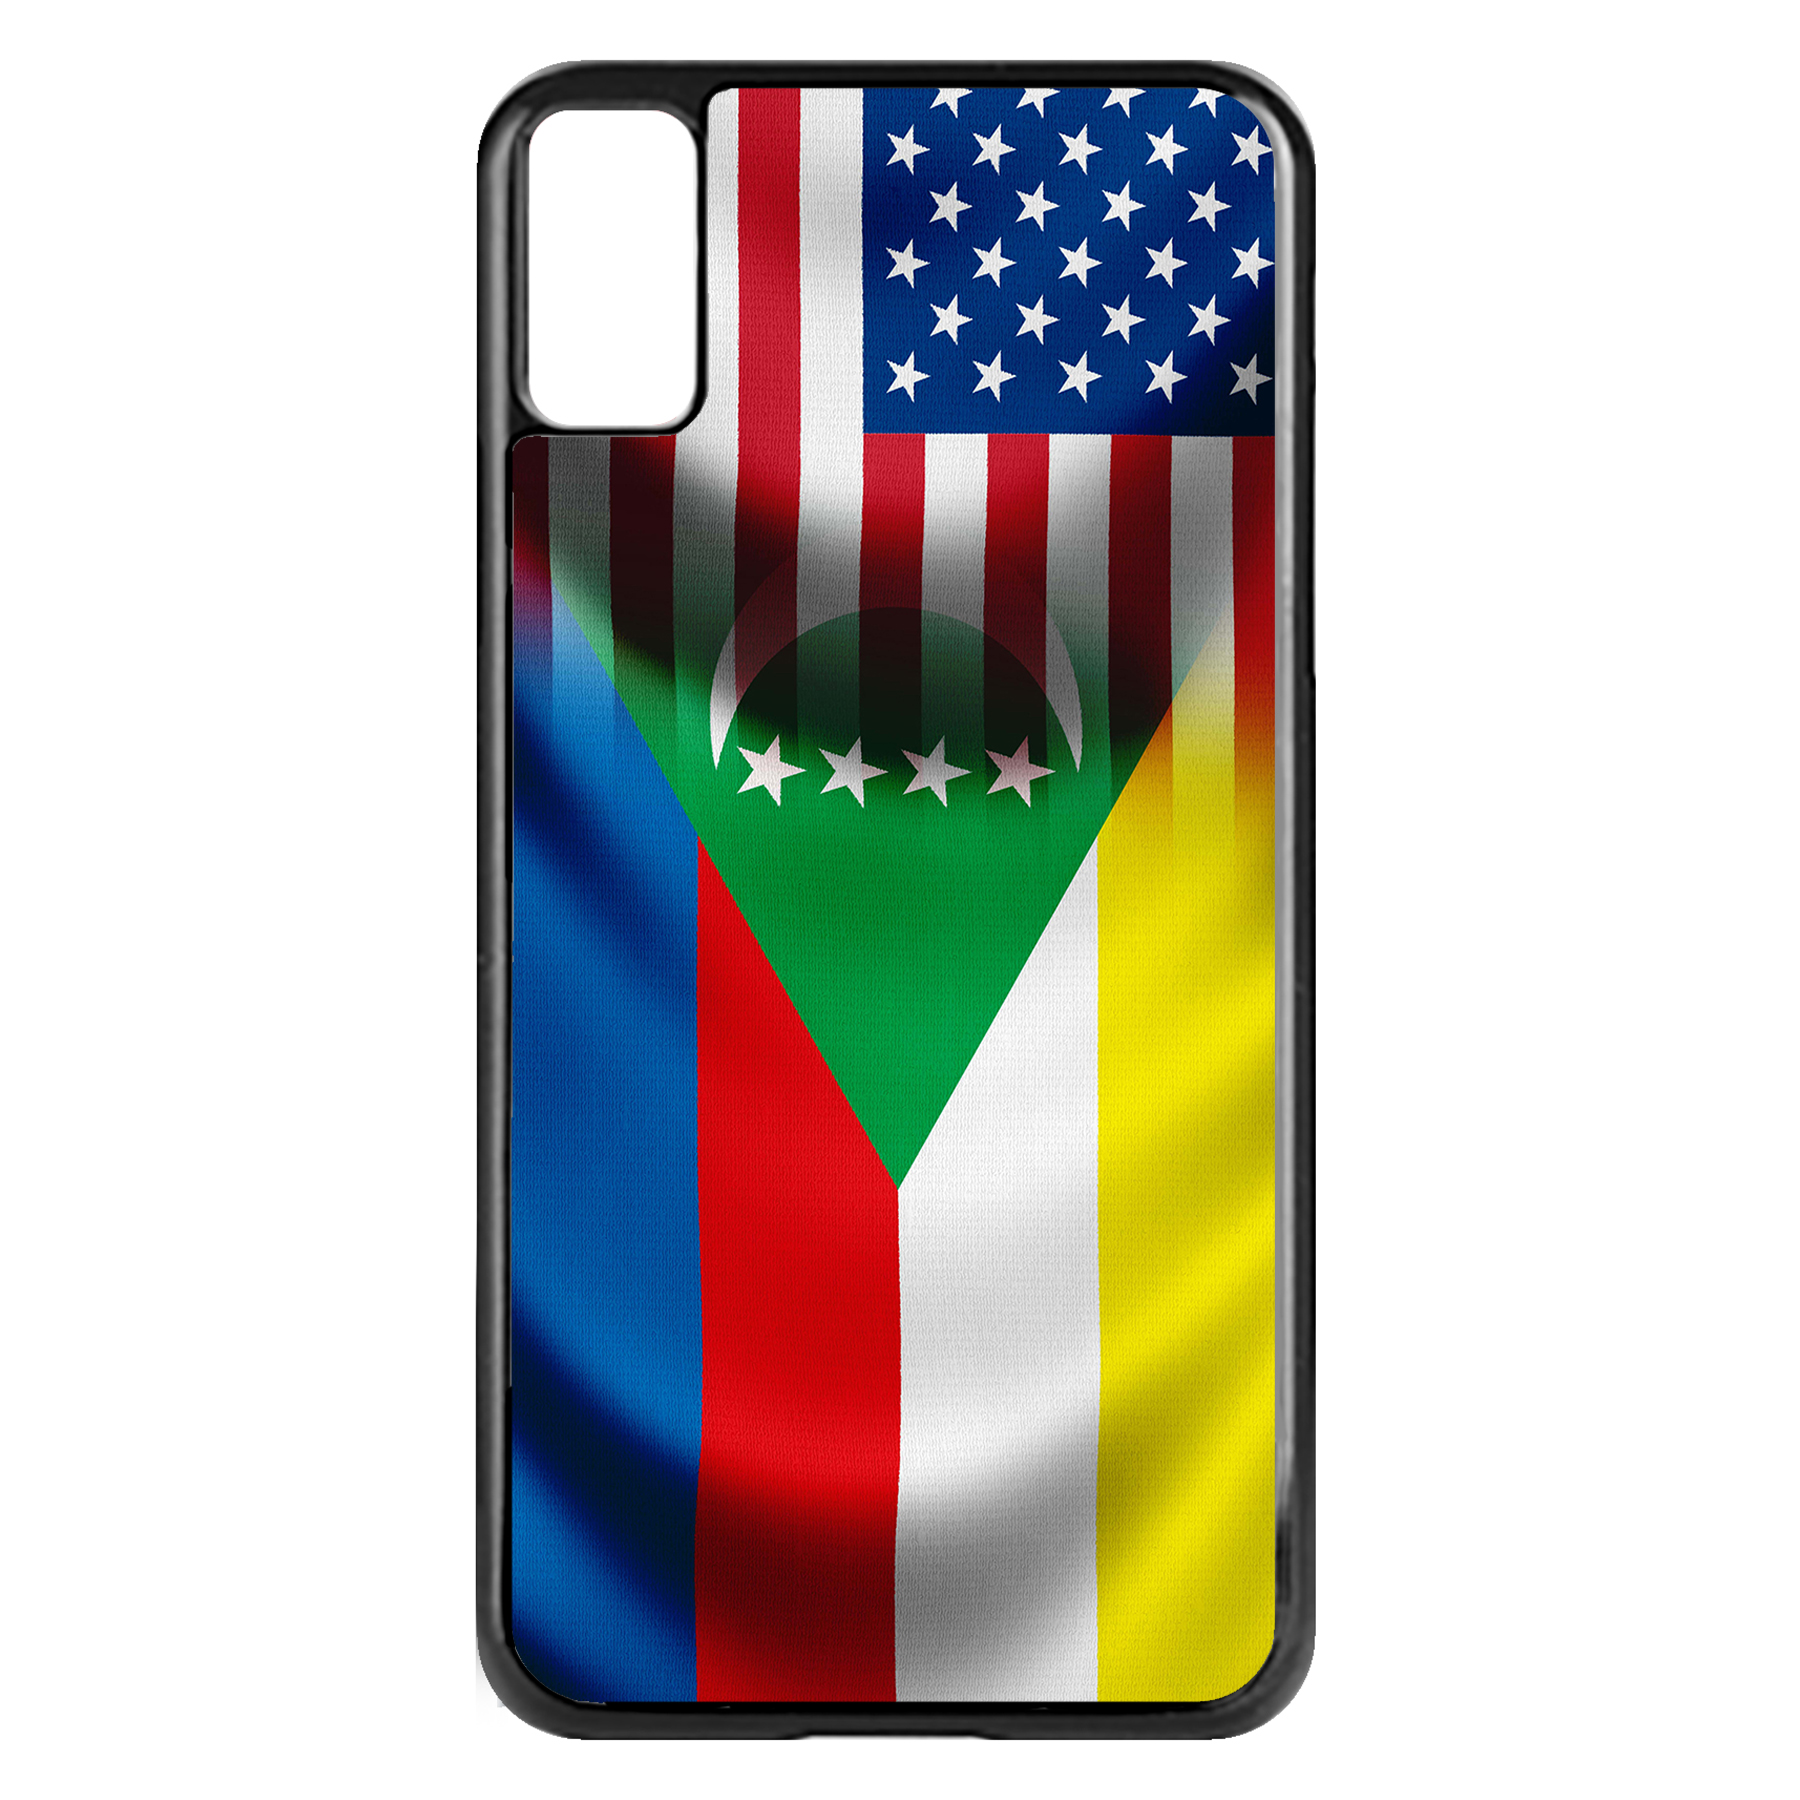 Apple-iPhone-Case-with-Flag-of-Comoros-Comorian-Many-Design-Options thumbnail 37